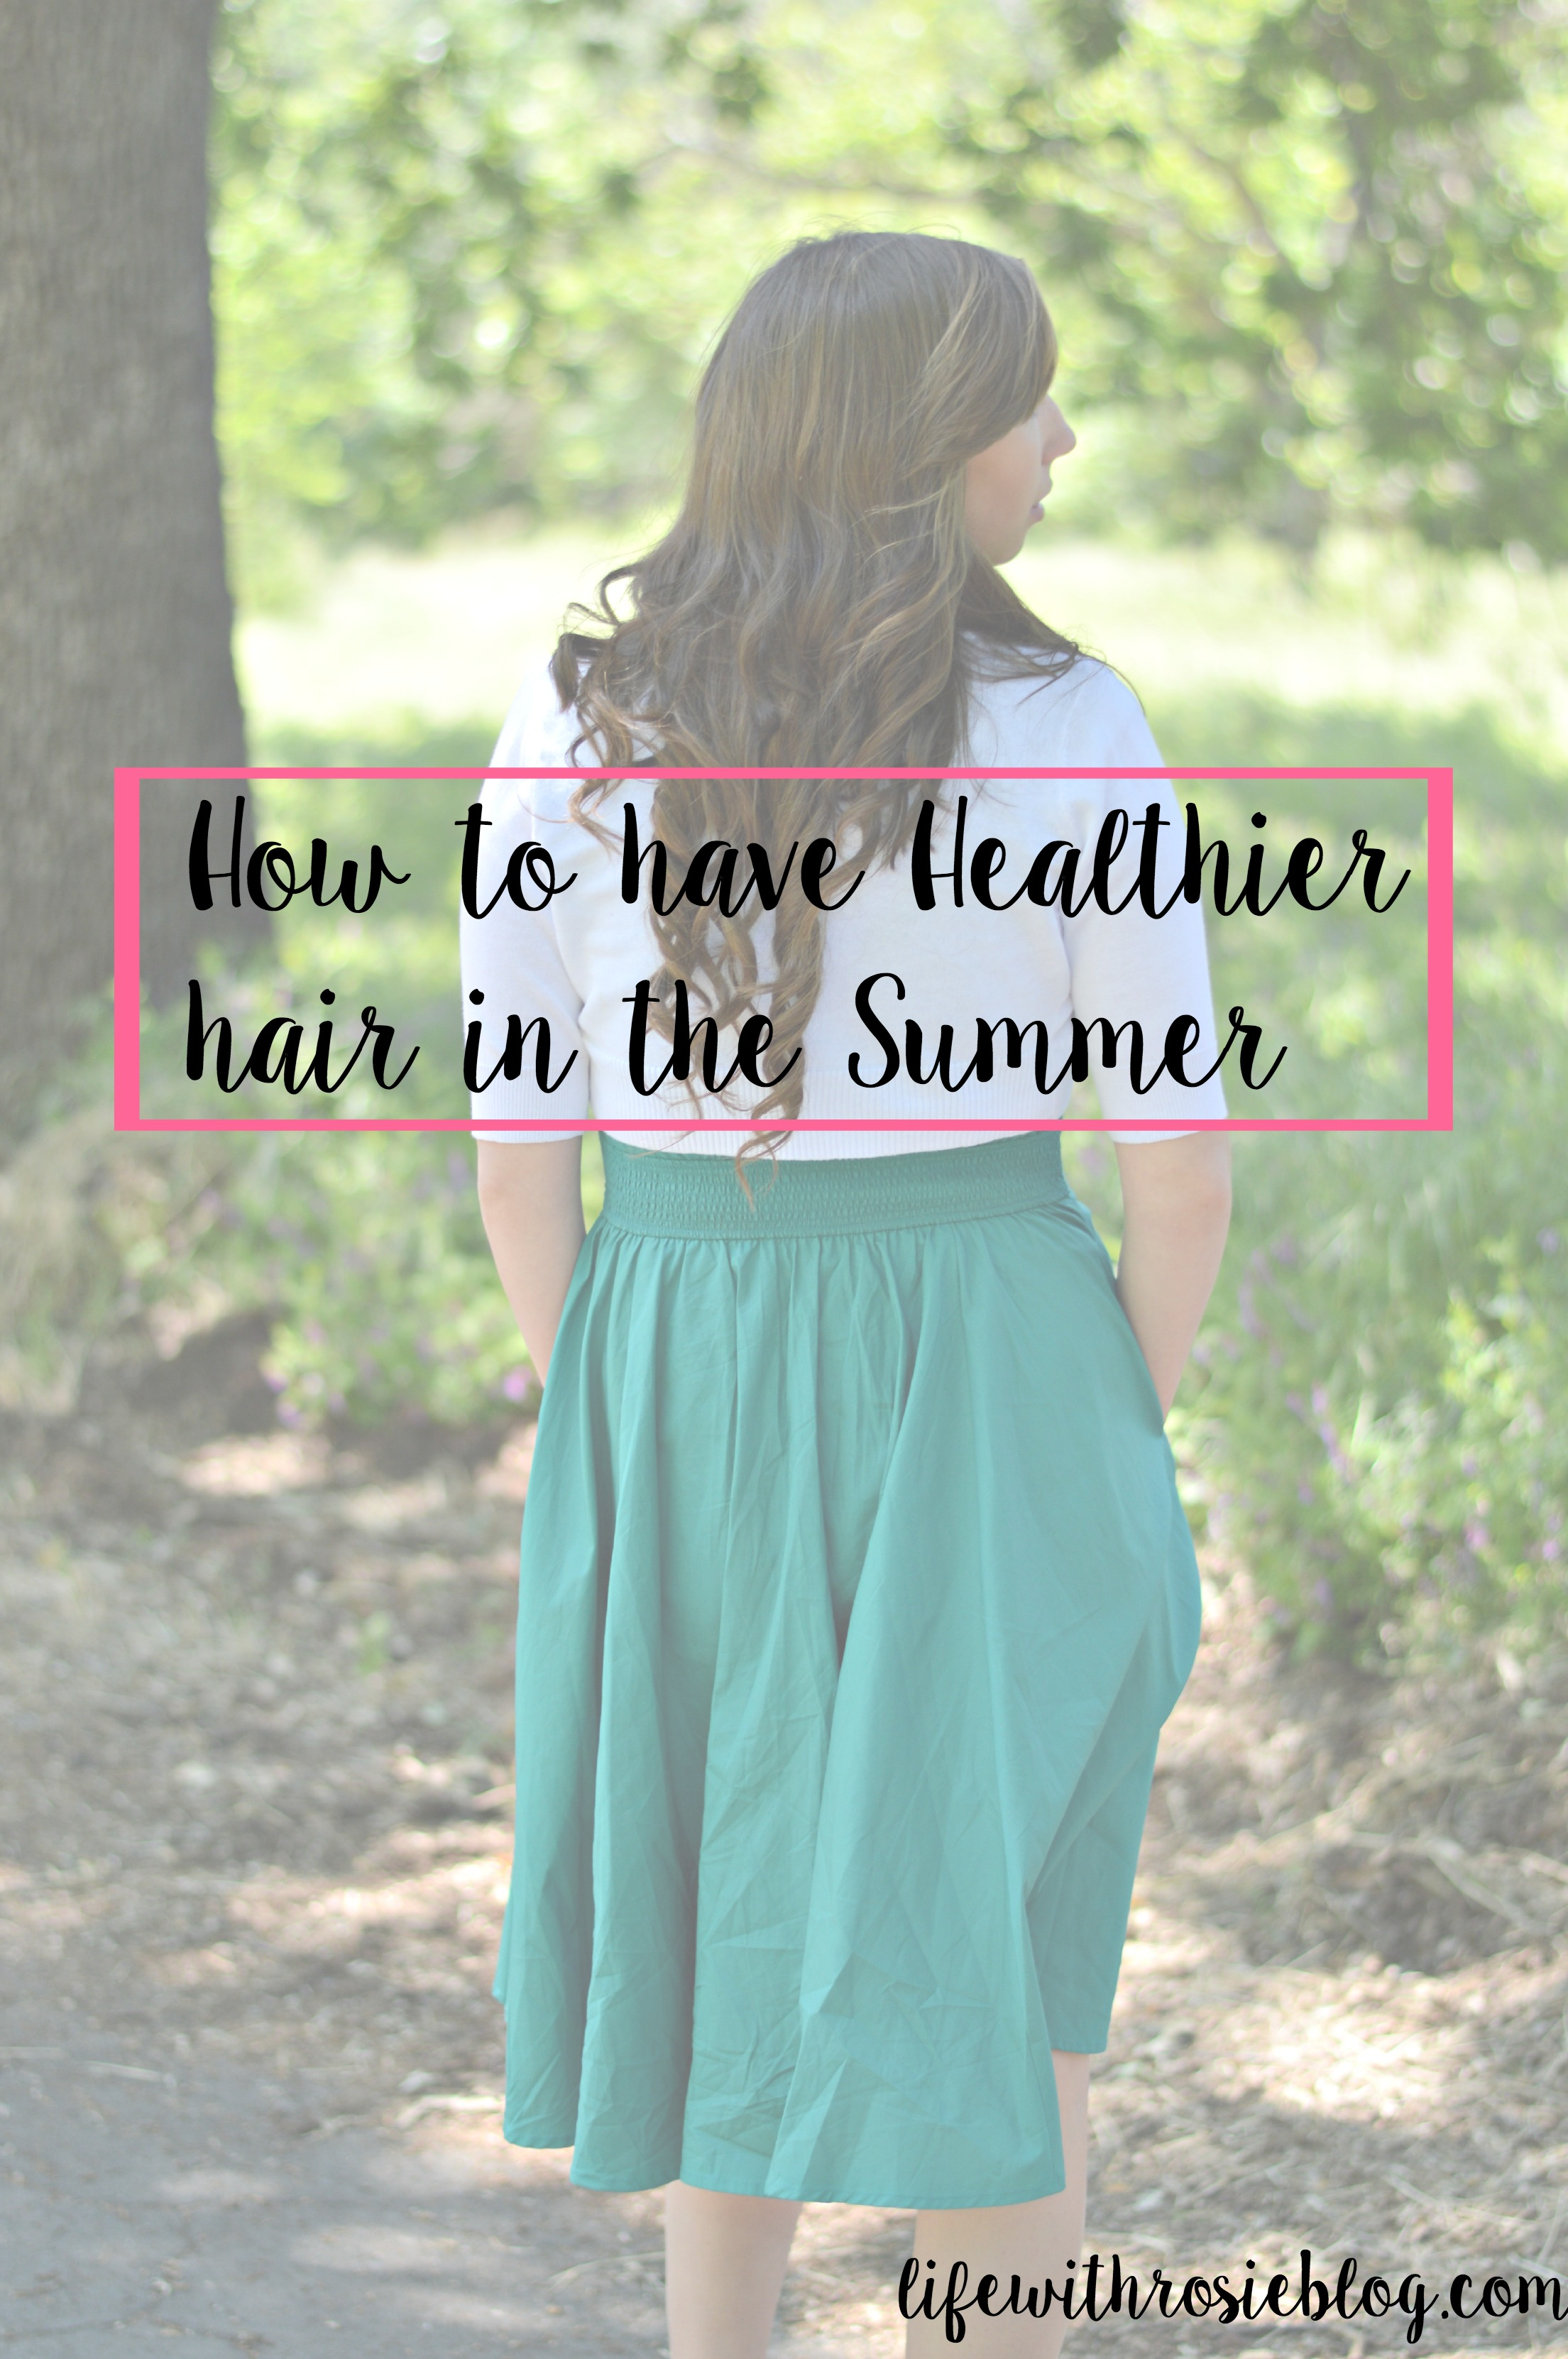 How to have Healthier Hair in the Summer: Tips to keep your dry hair feeling better! // Life with Rosie